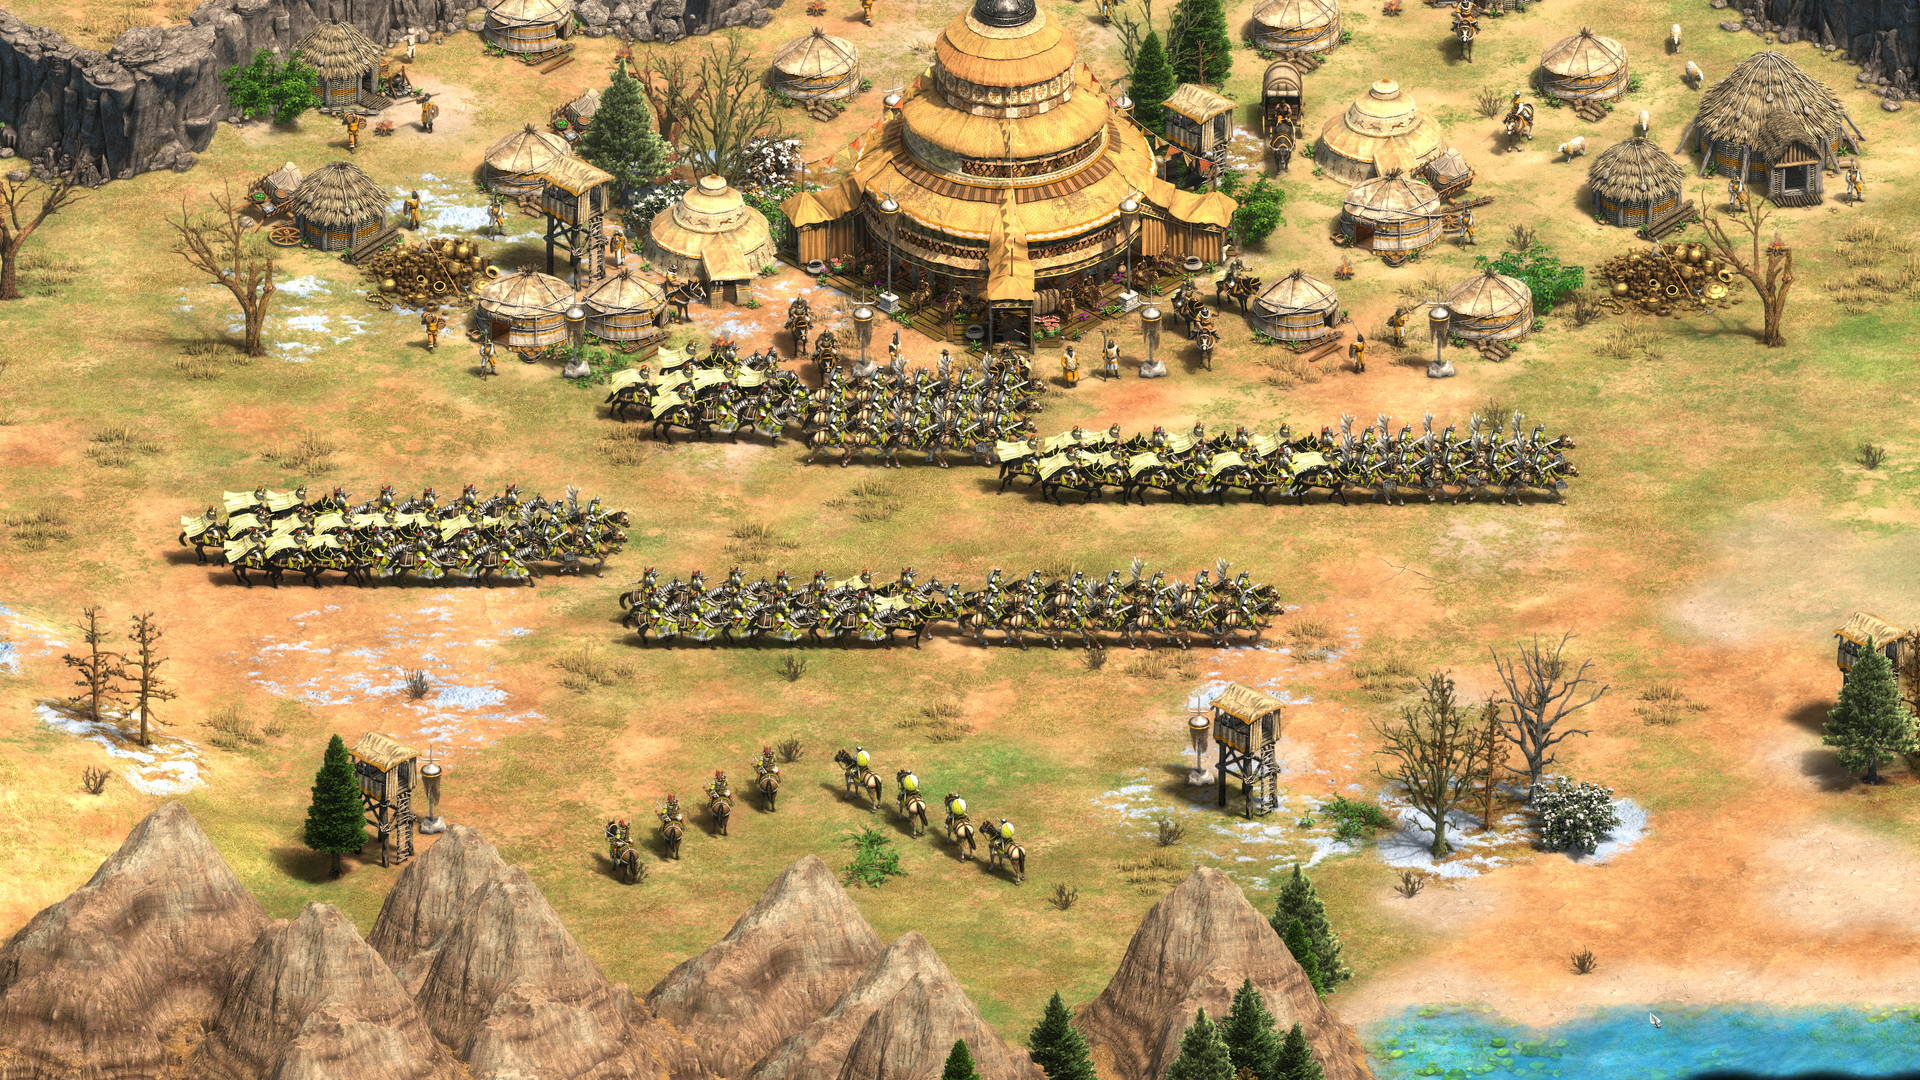 Age of Empires II: Definitive Edition - screenshot 4